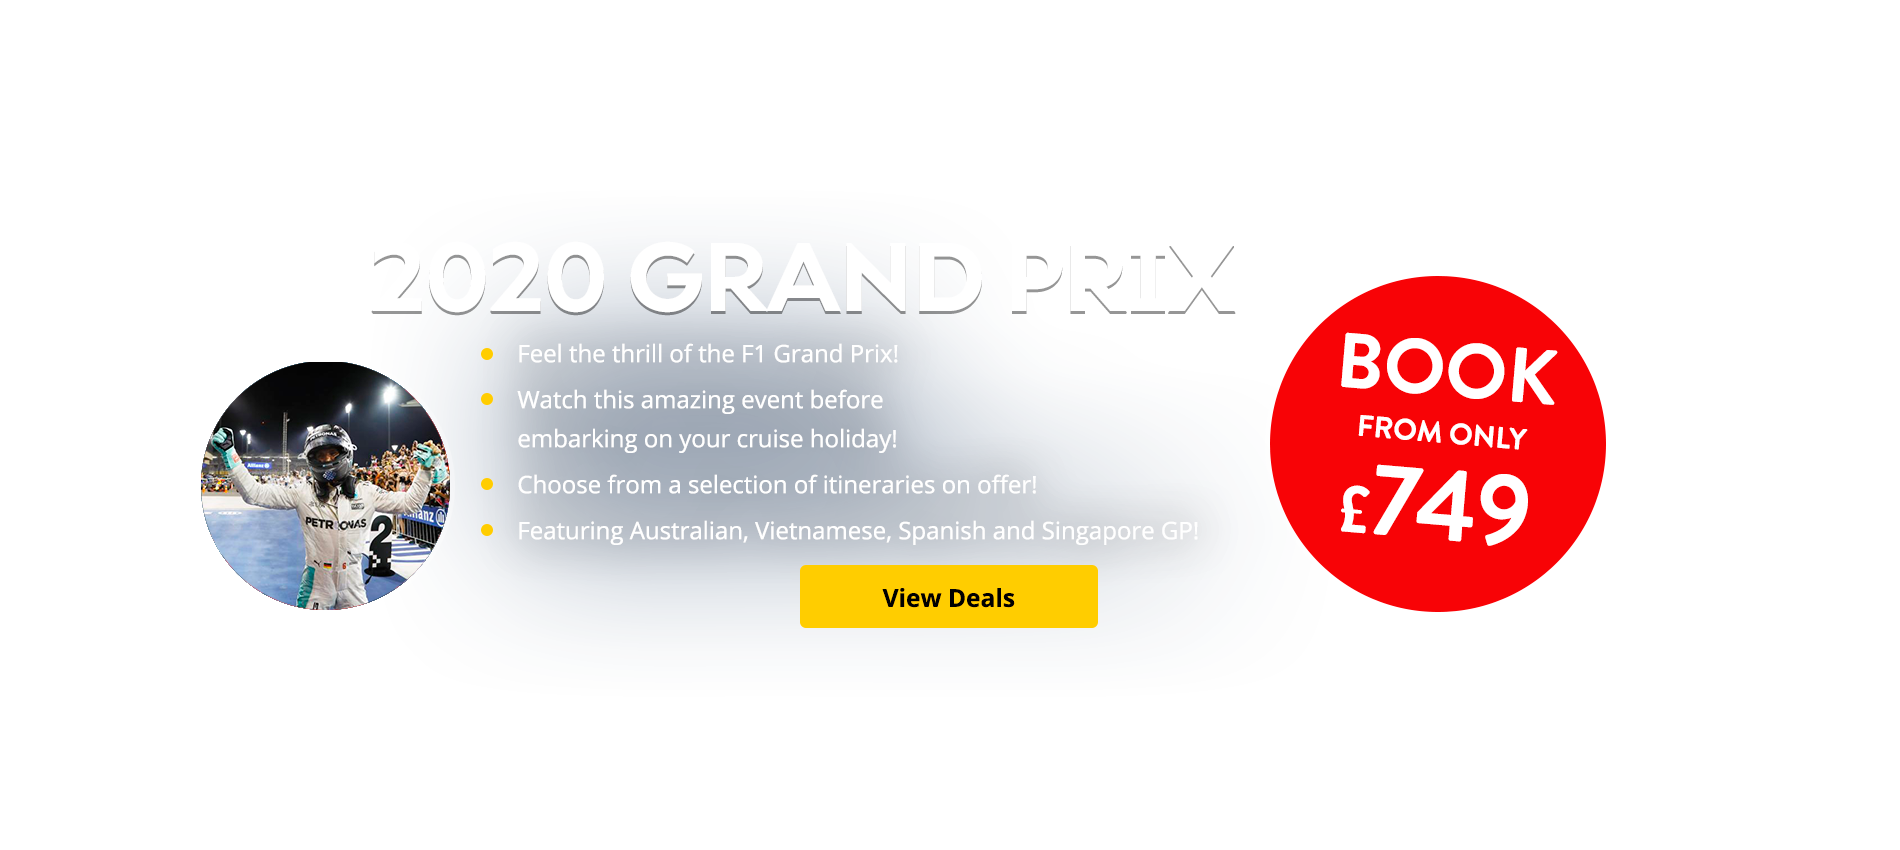 Feel the thrill of the F1 Grand Prix! Choose to watch this amazing event before embarking on your cruise holiday! Choose from a selection of itineraries on offer! Featuring Australian, Vietnamese, Spanish and Singapore GP!